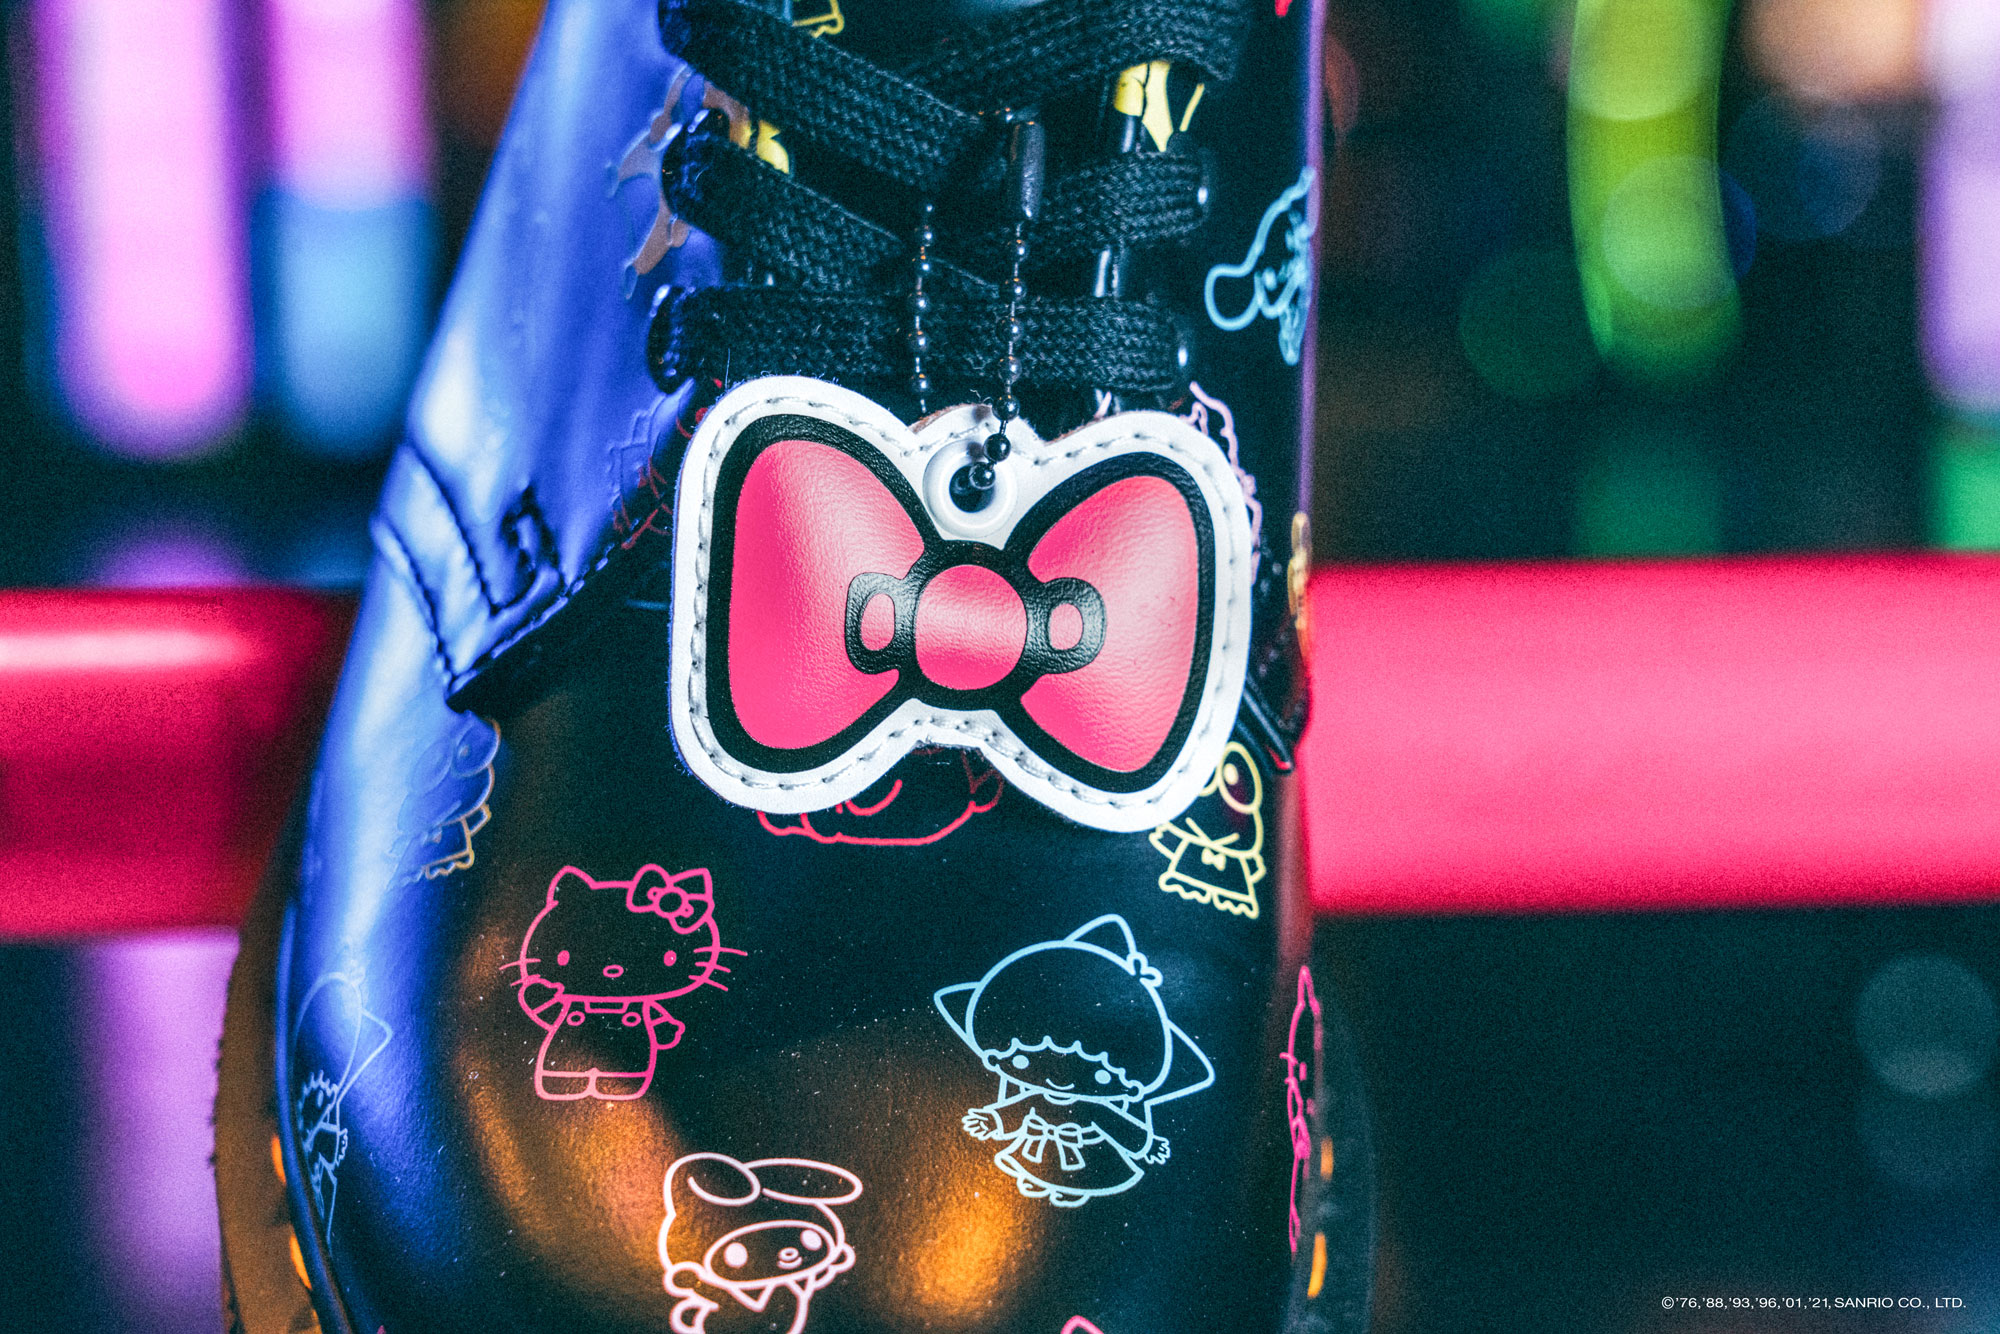 Dr. Martens x Hello Kitty collection